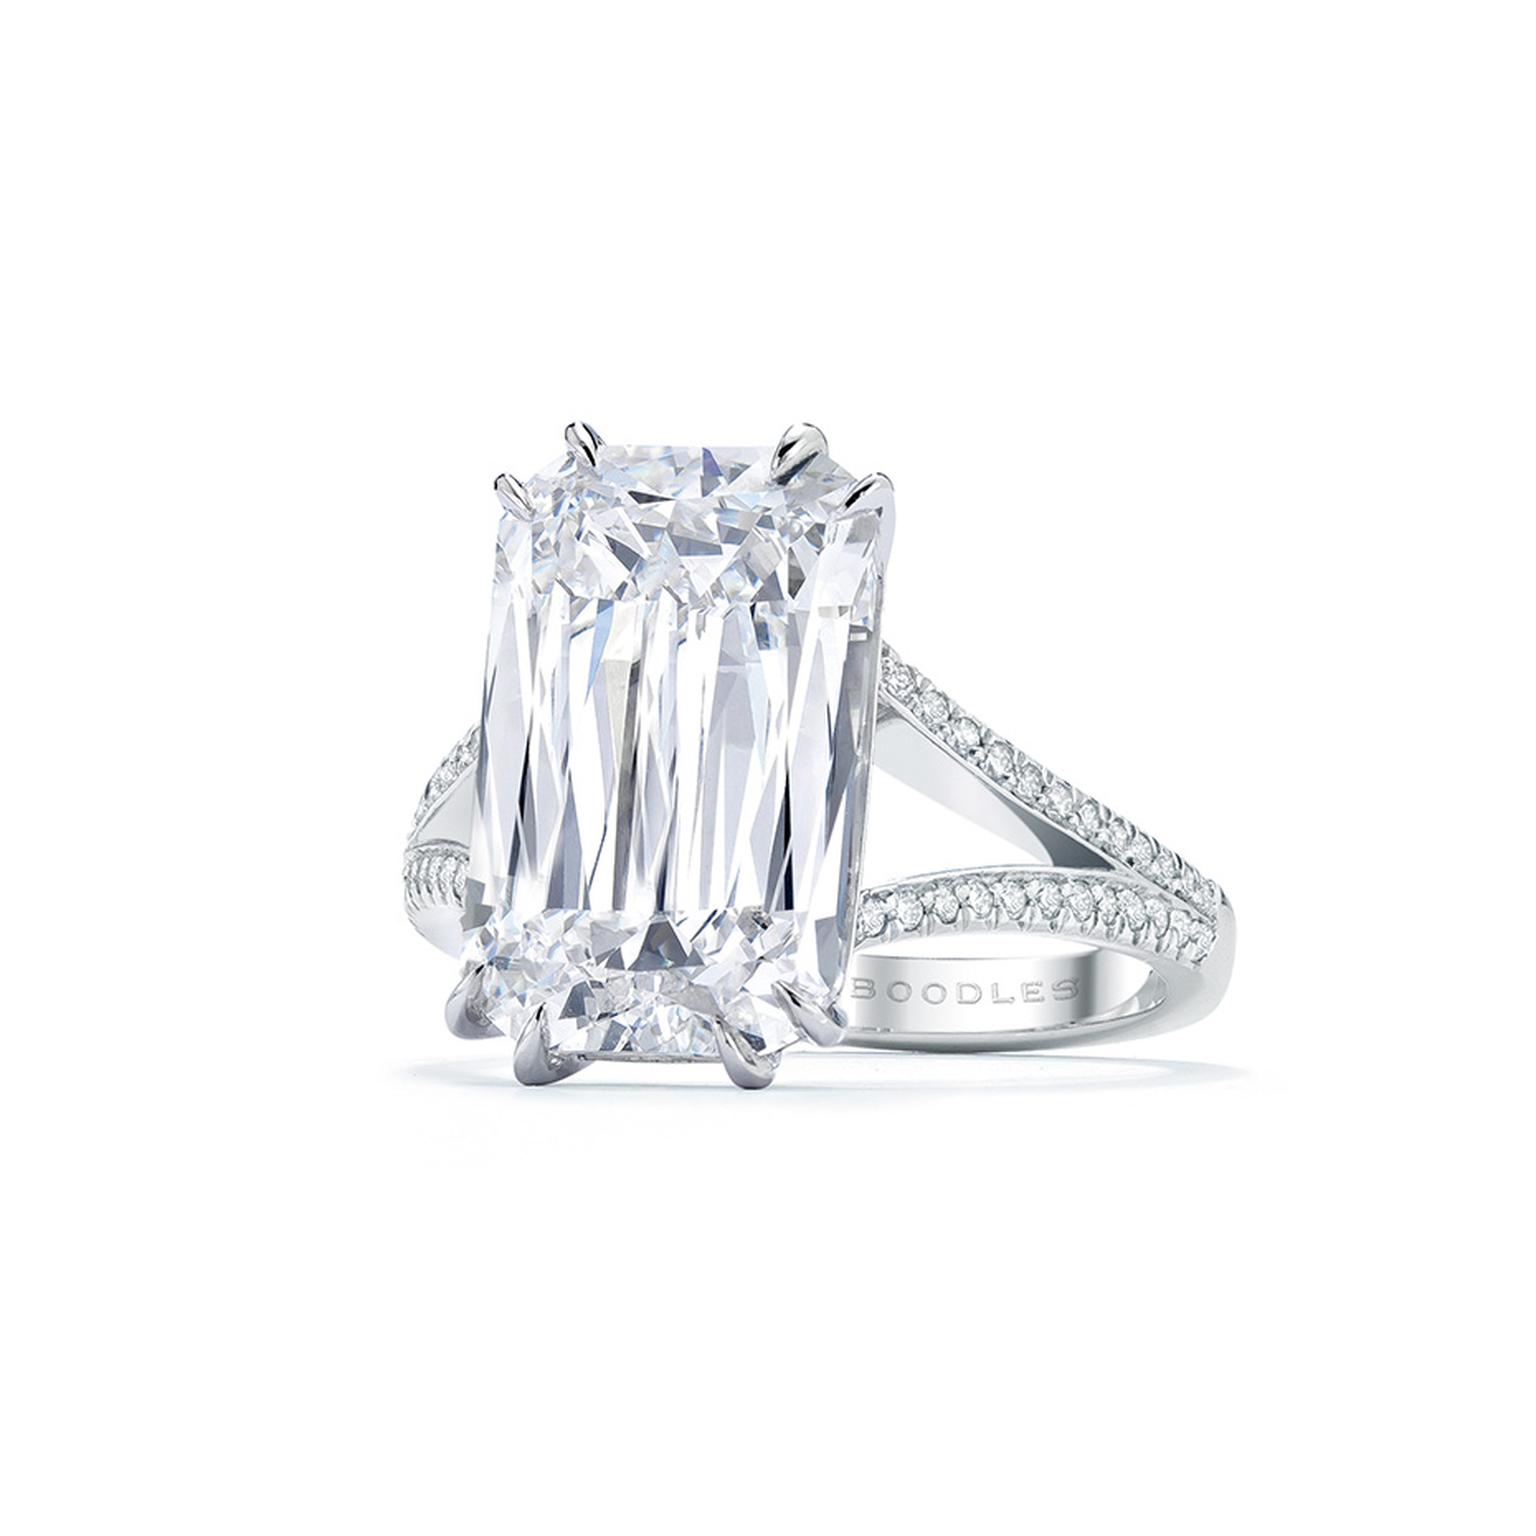 Boodles Ashoka diamond ring